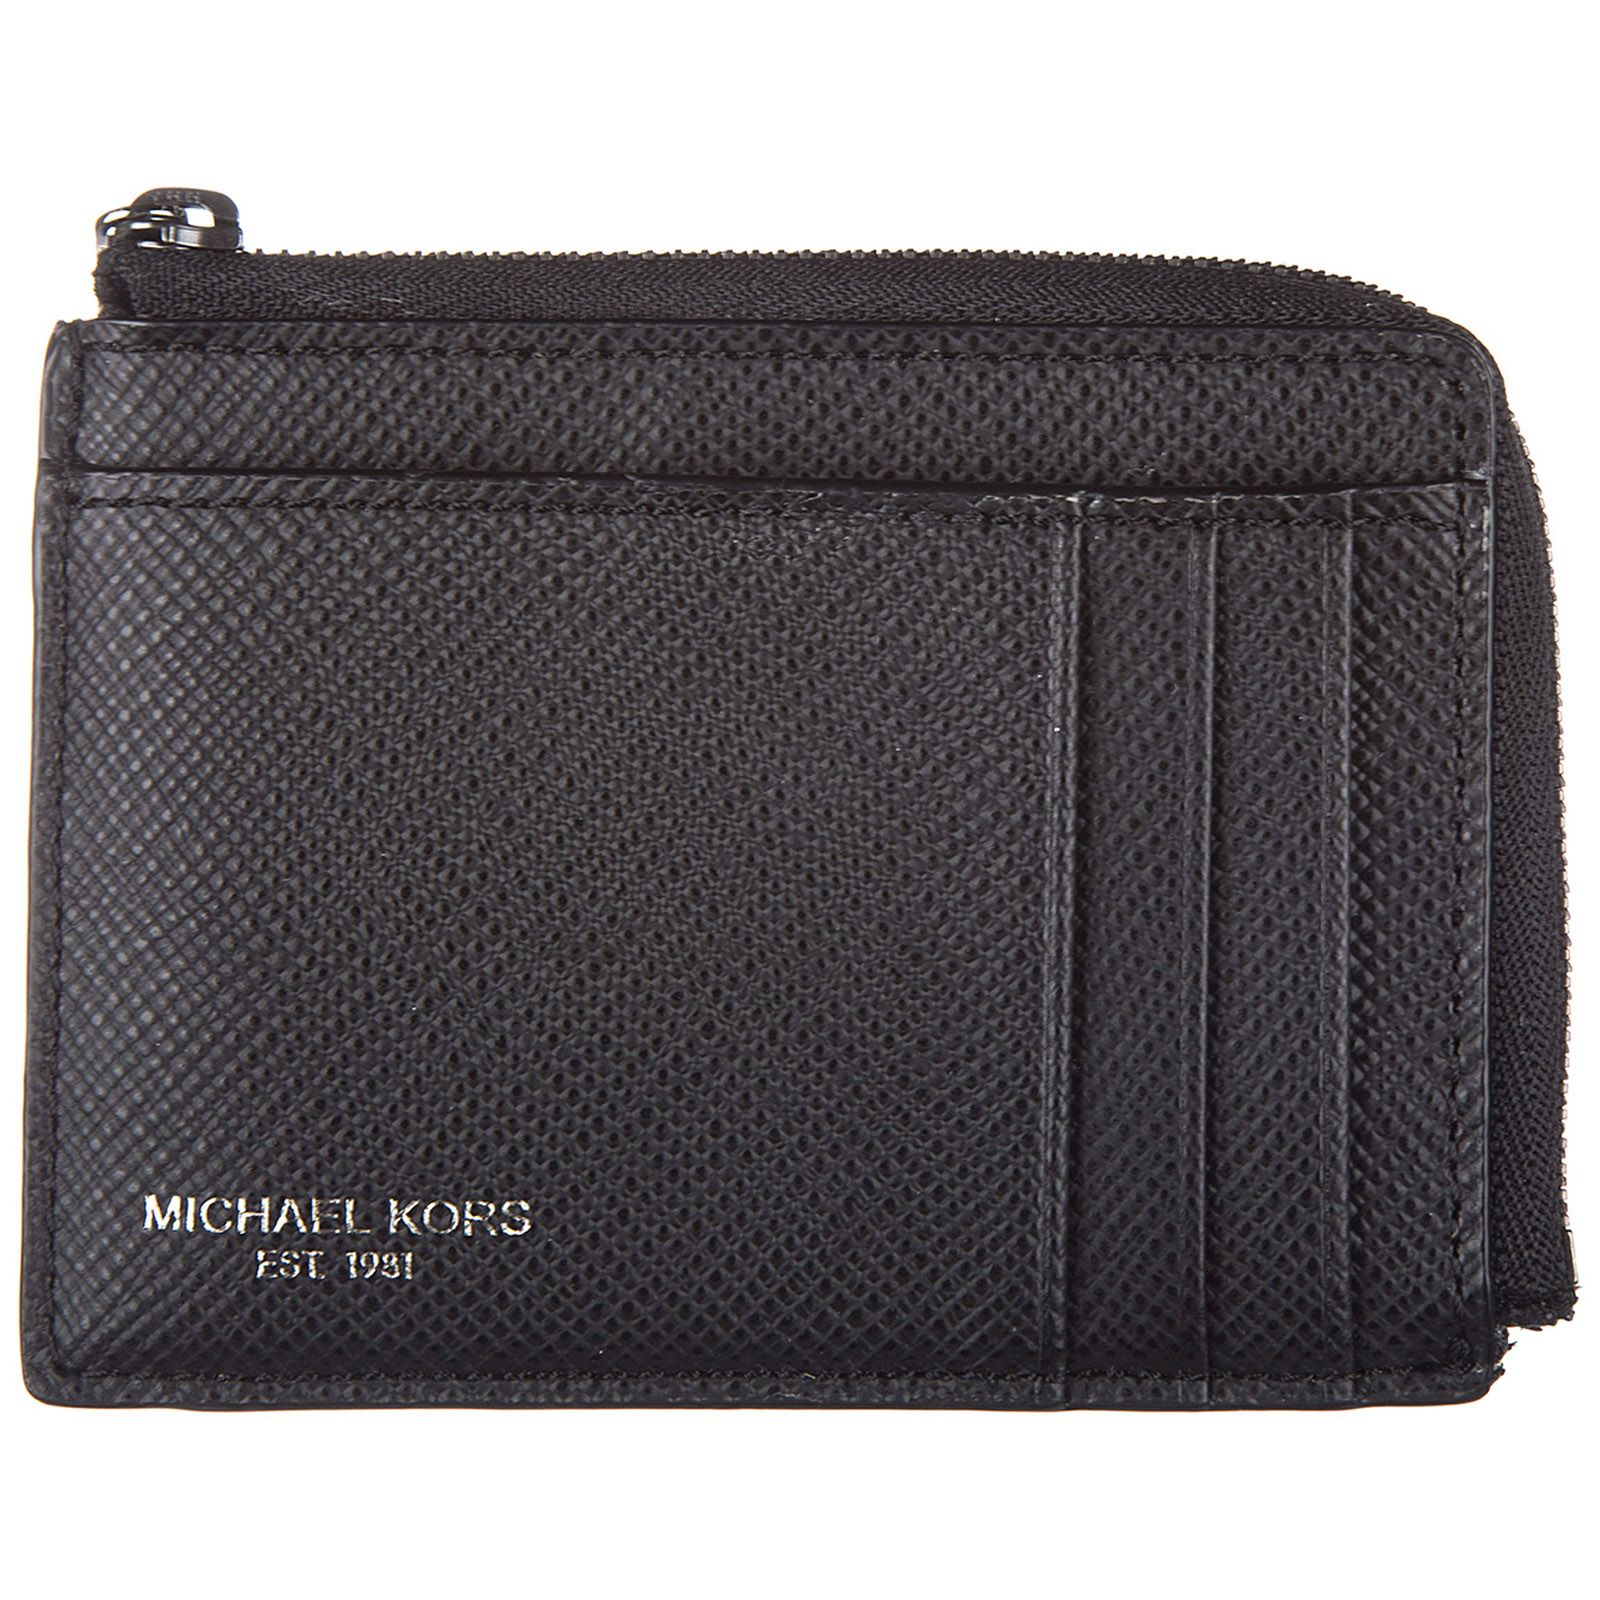 28fdb754dd7d MICHAEL KORS MEN S GENUINE LEATHER CREDIT CARD CASE HOLDER WALLET HARRISON.   michaelkors